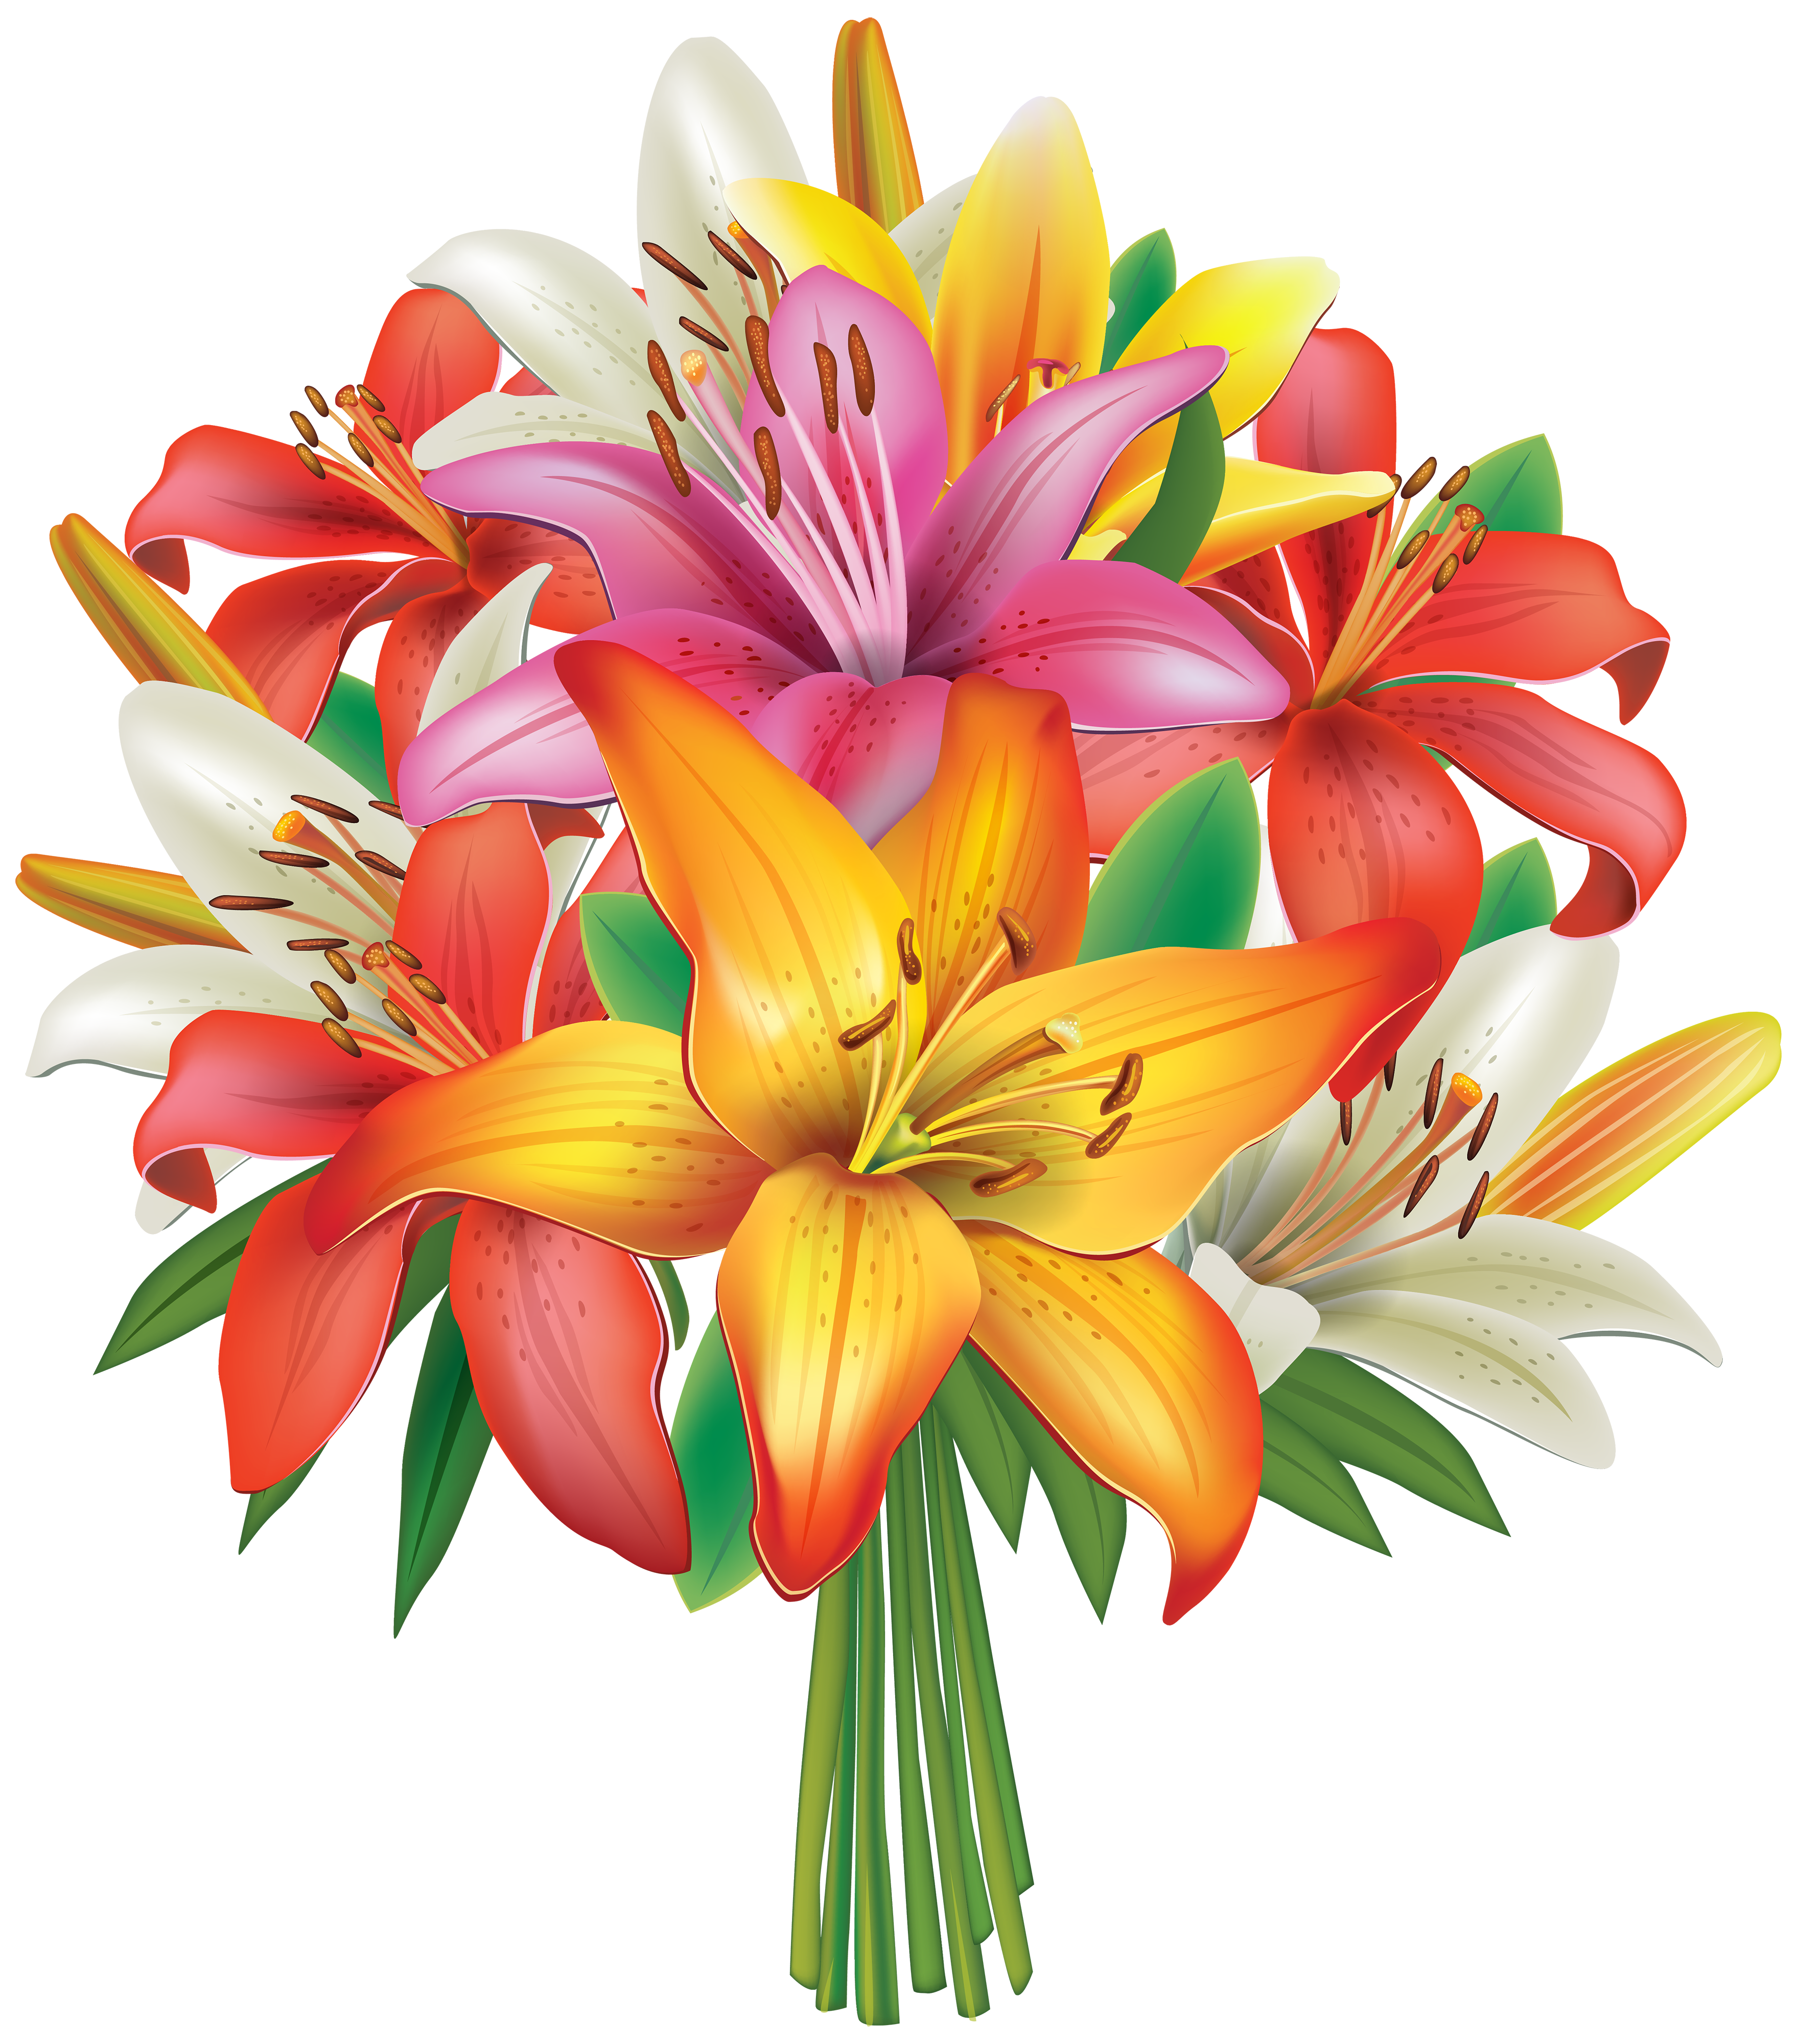 Bunch of flowers clipart free graphic royalty free stock Lilies Flowers Bouquet PNG Clipart Image | Gallery Yopriceville ... graphic royalty free stock